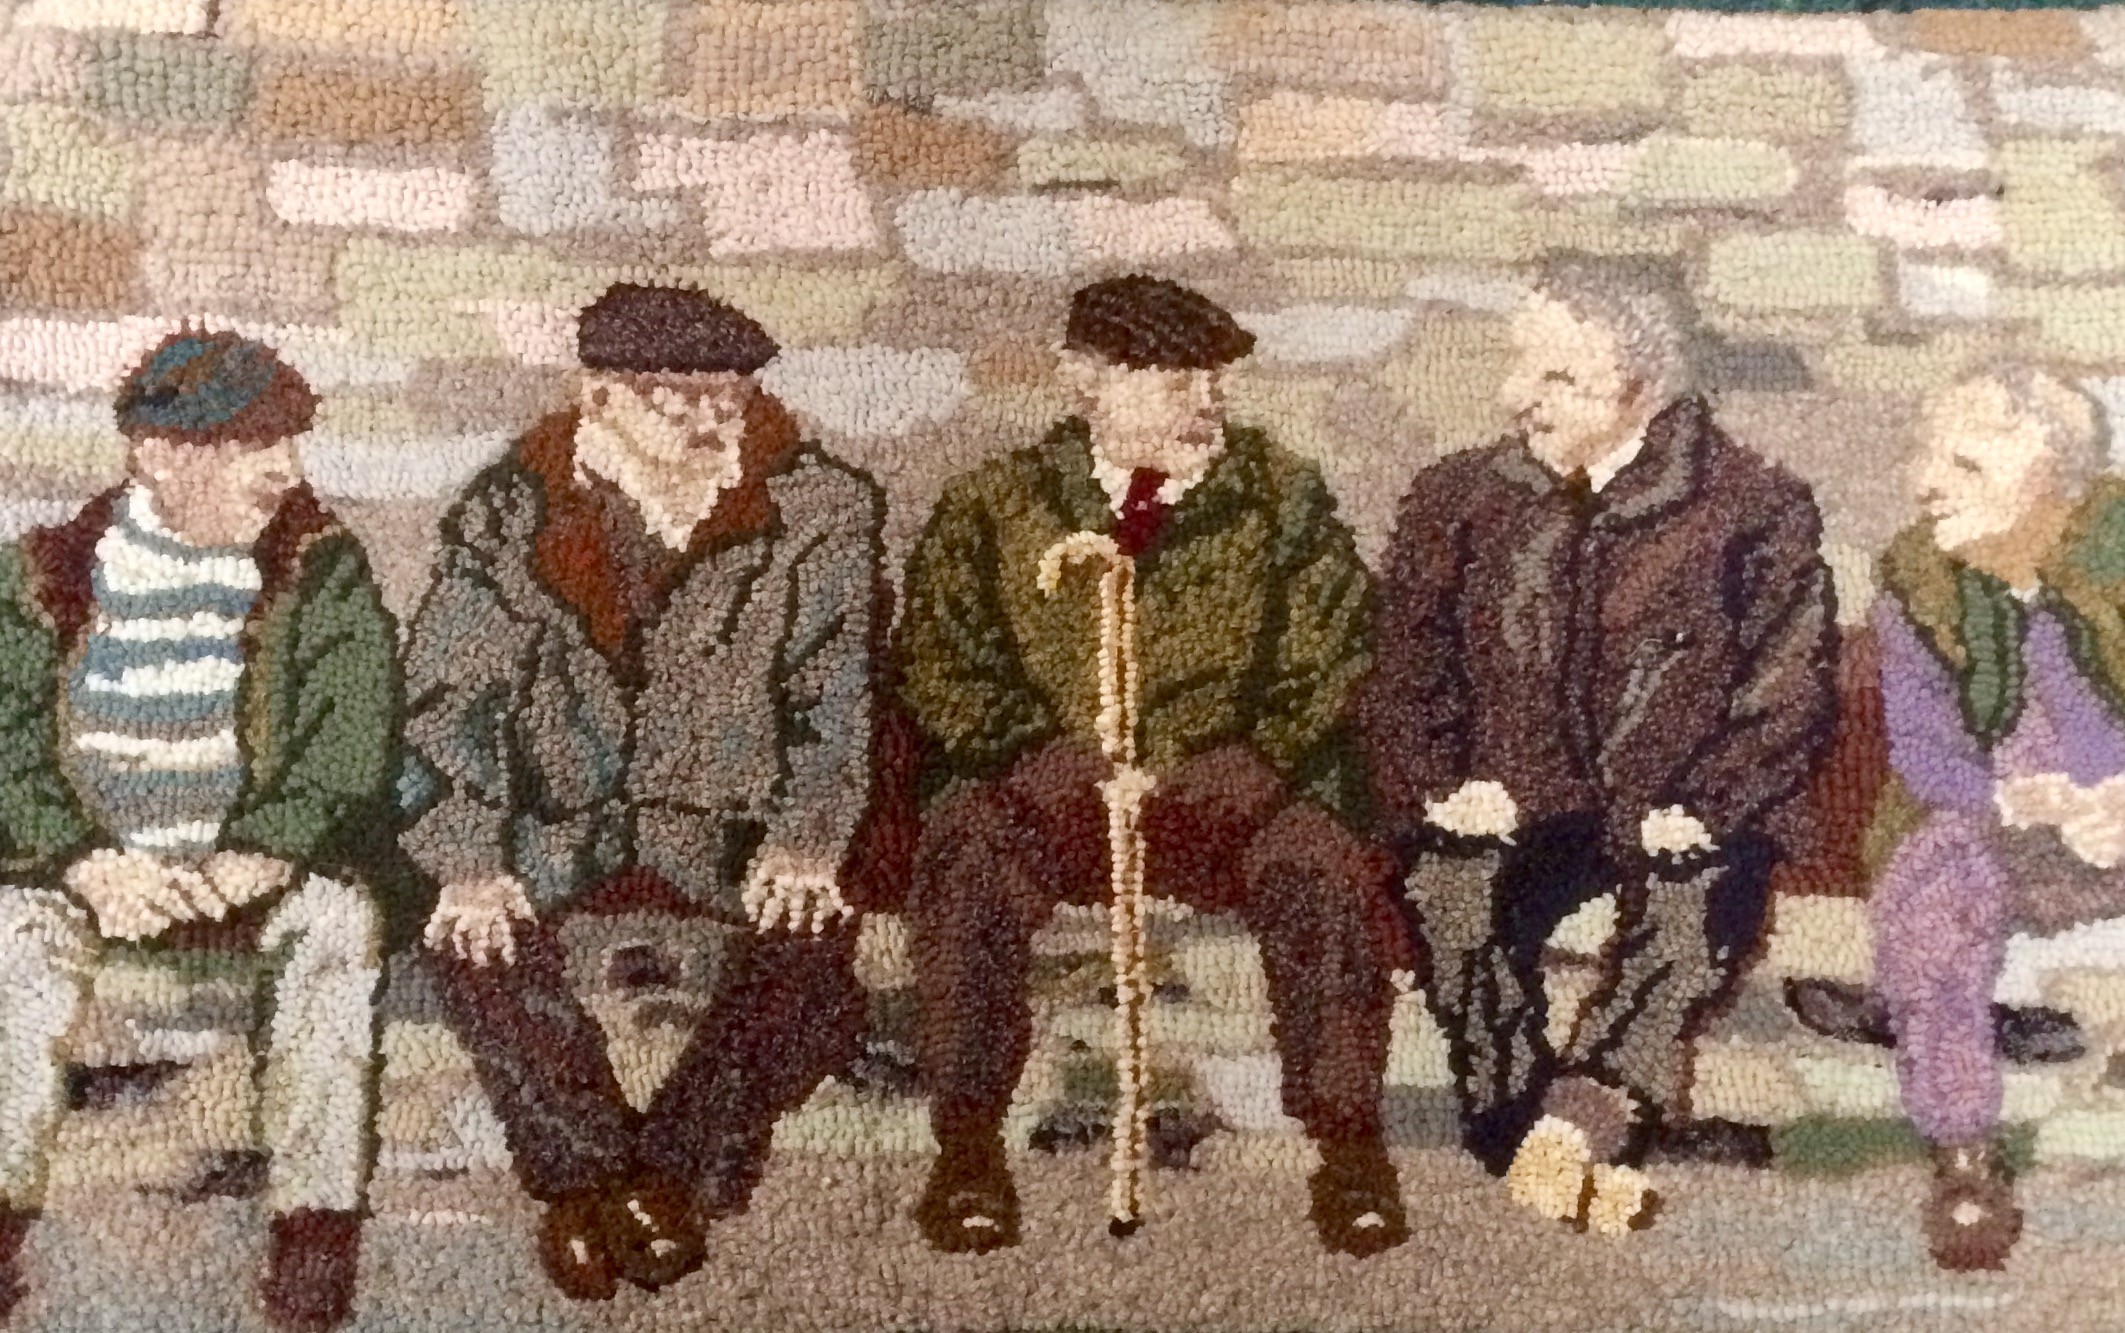 Men on a Bench Heather Ritchie BBC 4 Make rag rugging woman recycled artwork